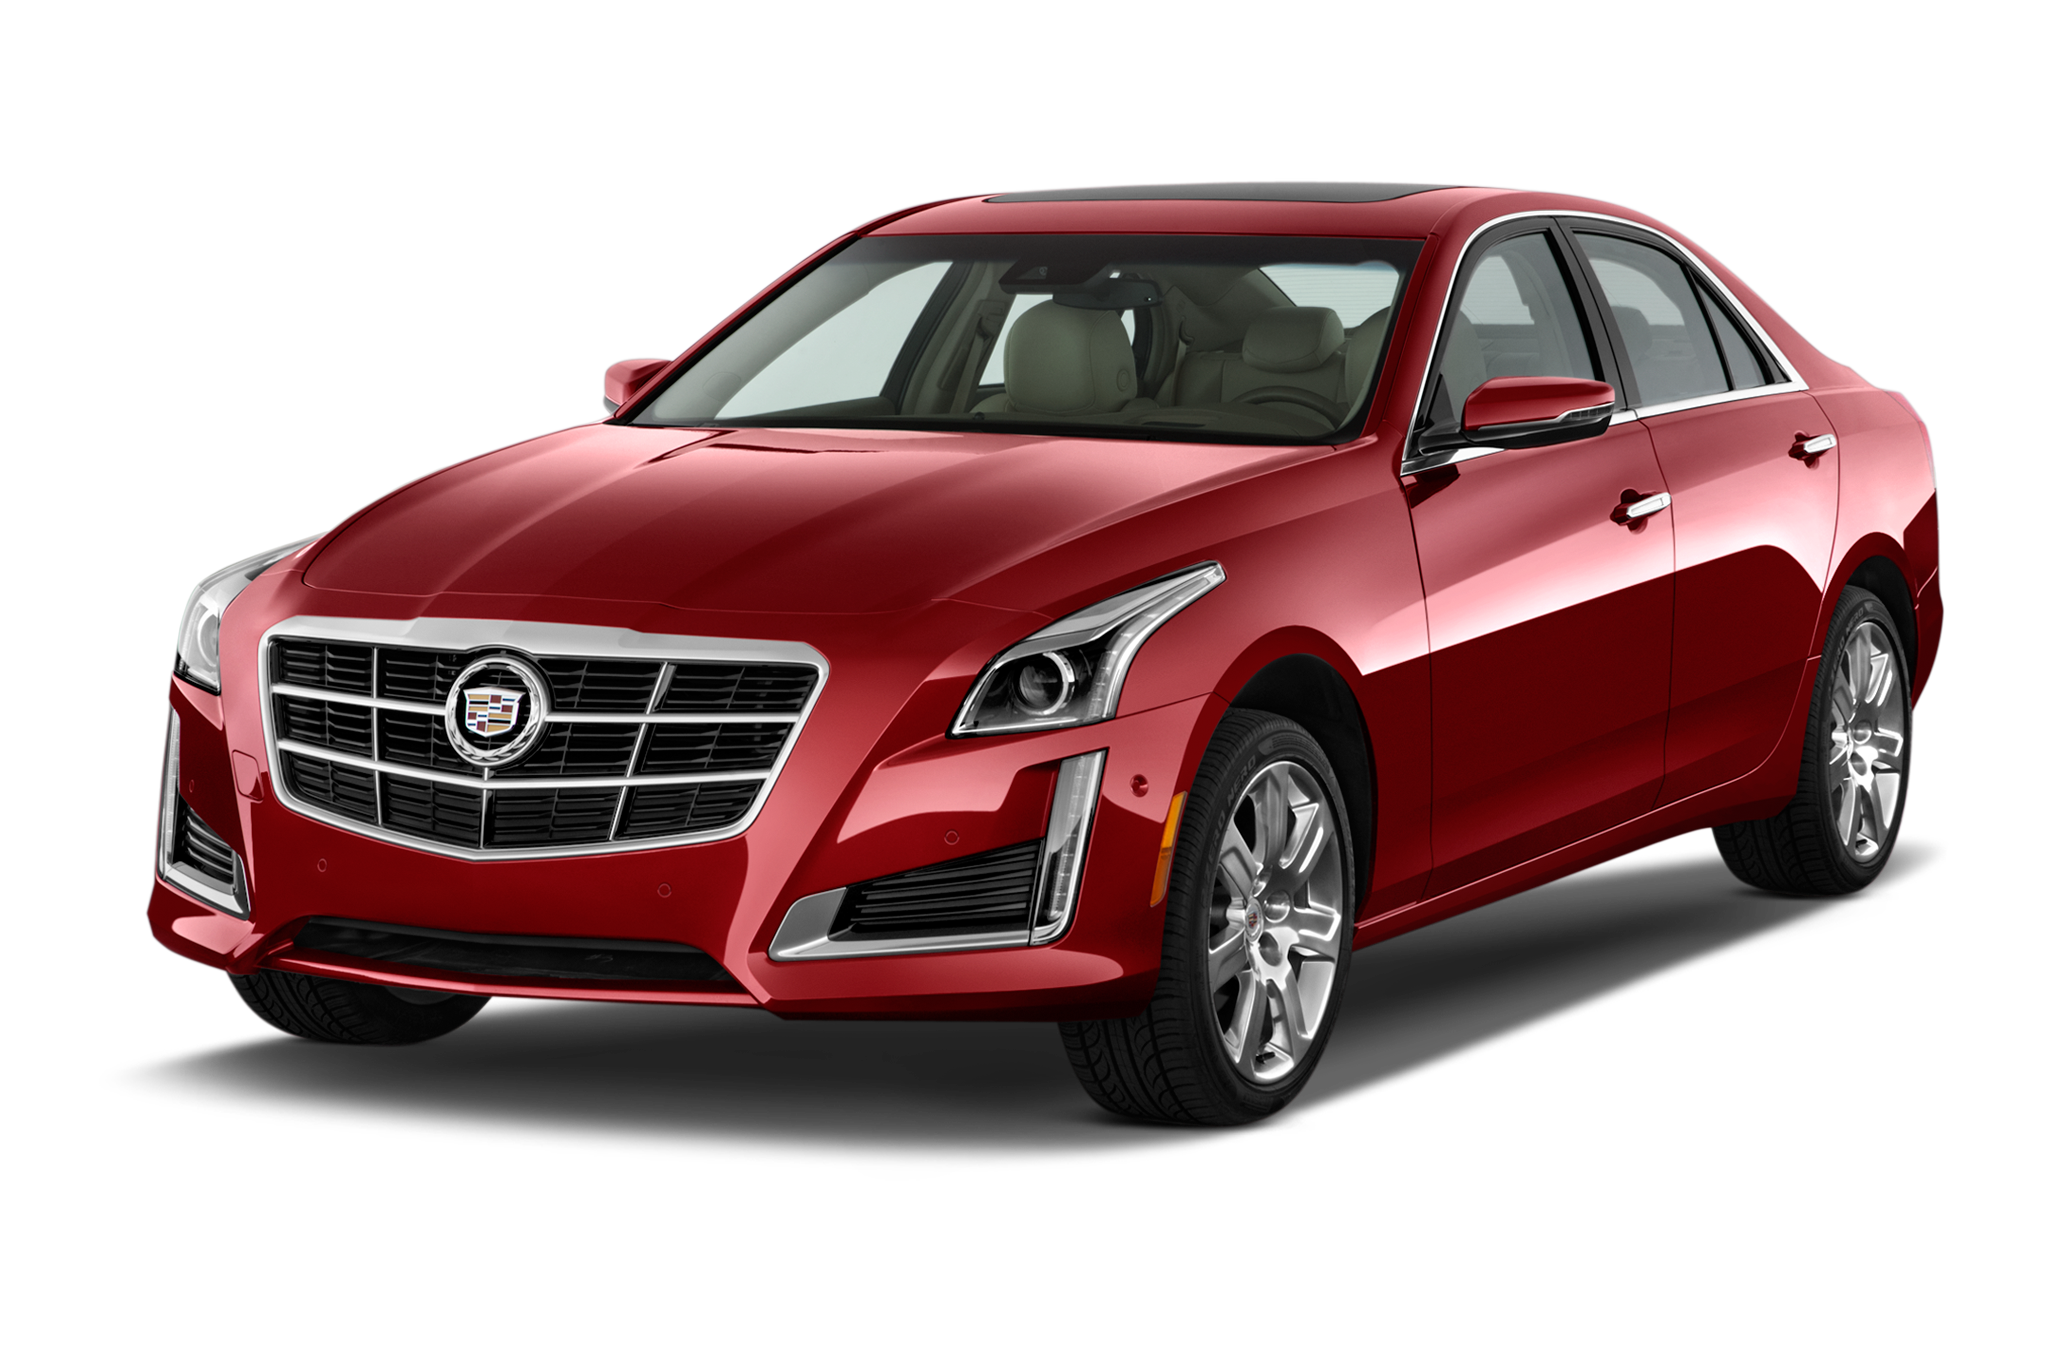 2015 cadillac cts goes wreathless adds tech features. Black Bedroom Furniture Sets. Home Design Ideas